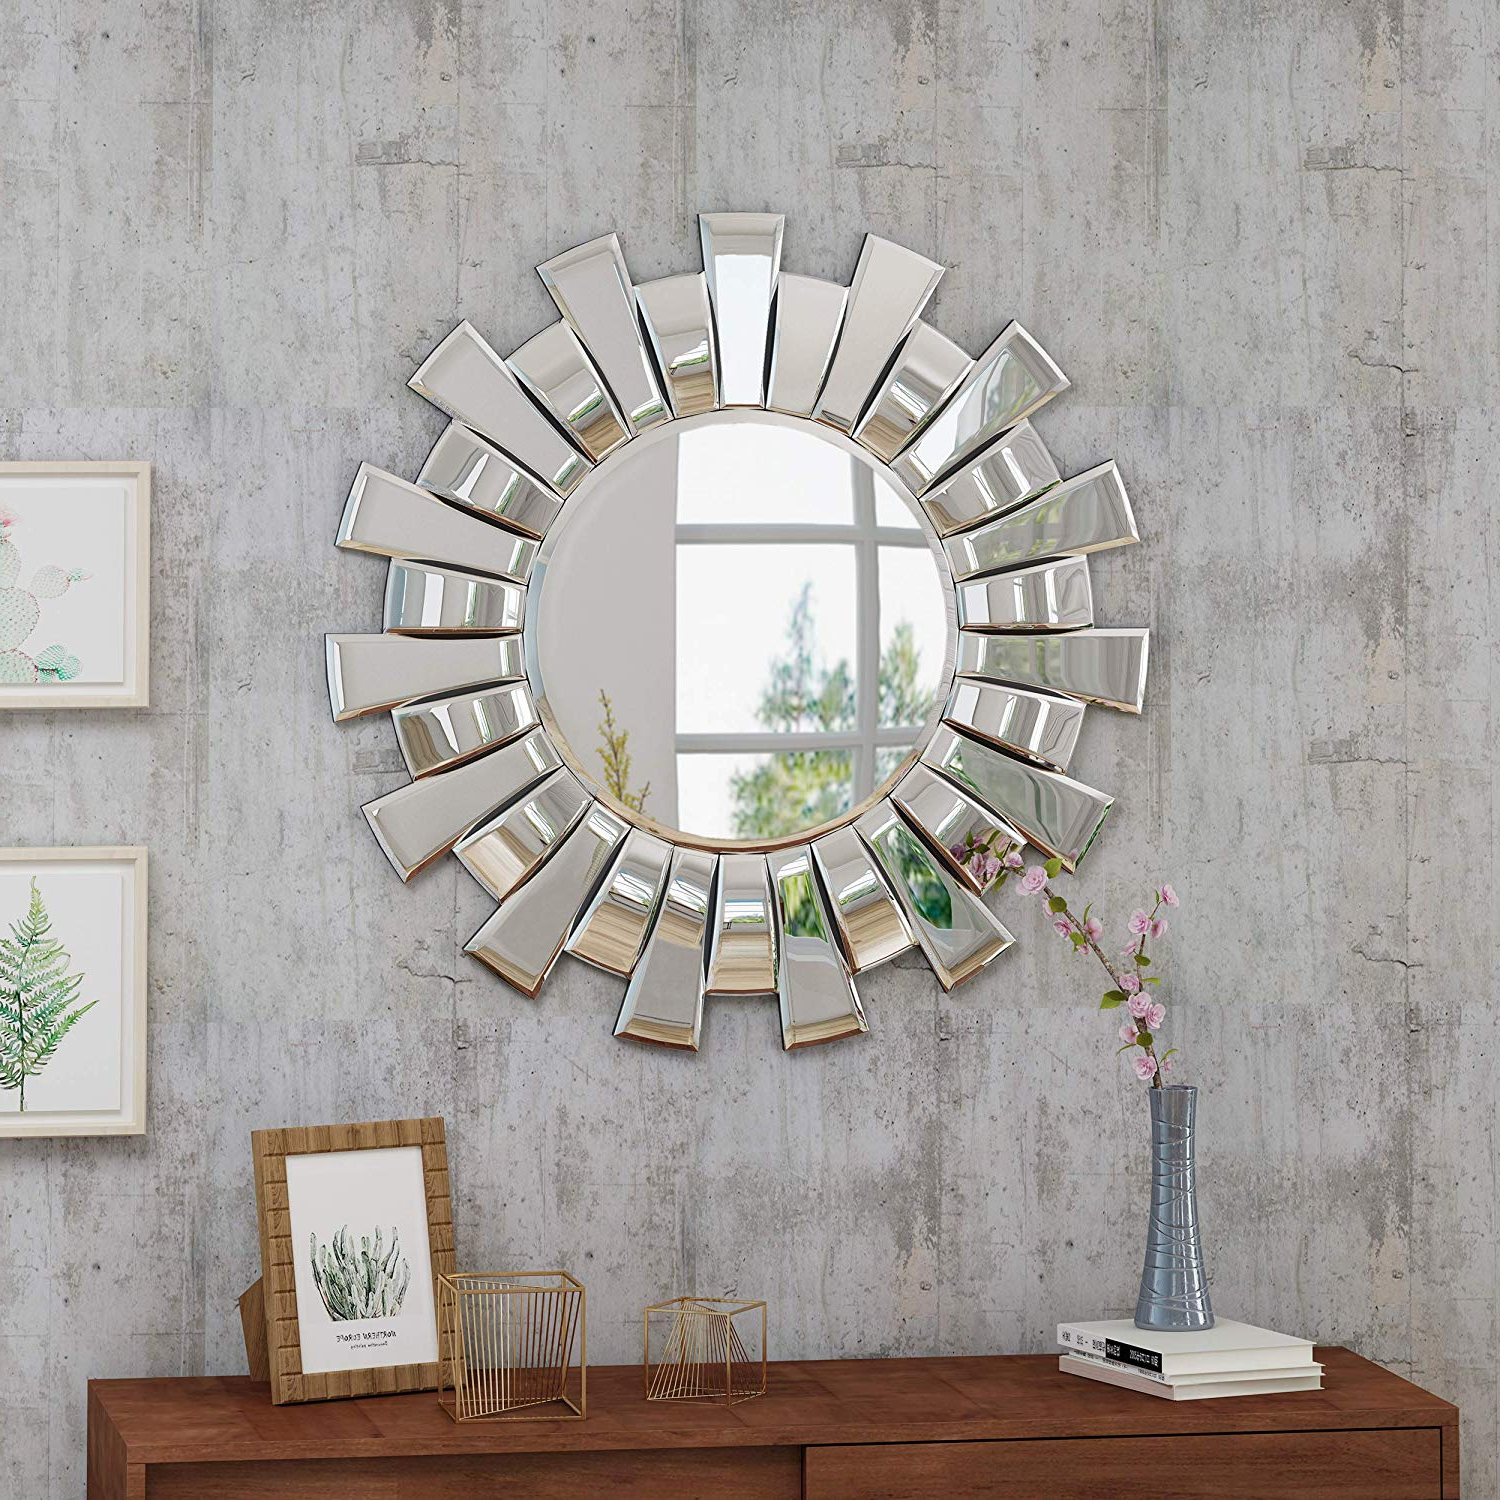 Large Sunburst Wall Mirrors Within Popular Christopher Knight Home Sunburst Wall Mirror, Gold (View 16 of 20)